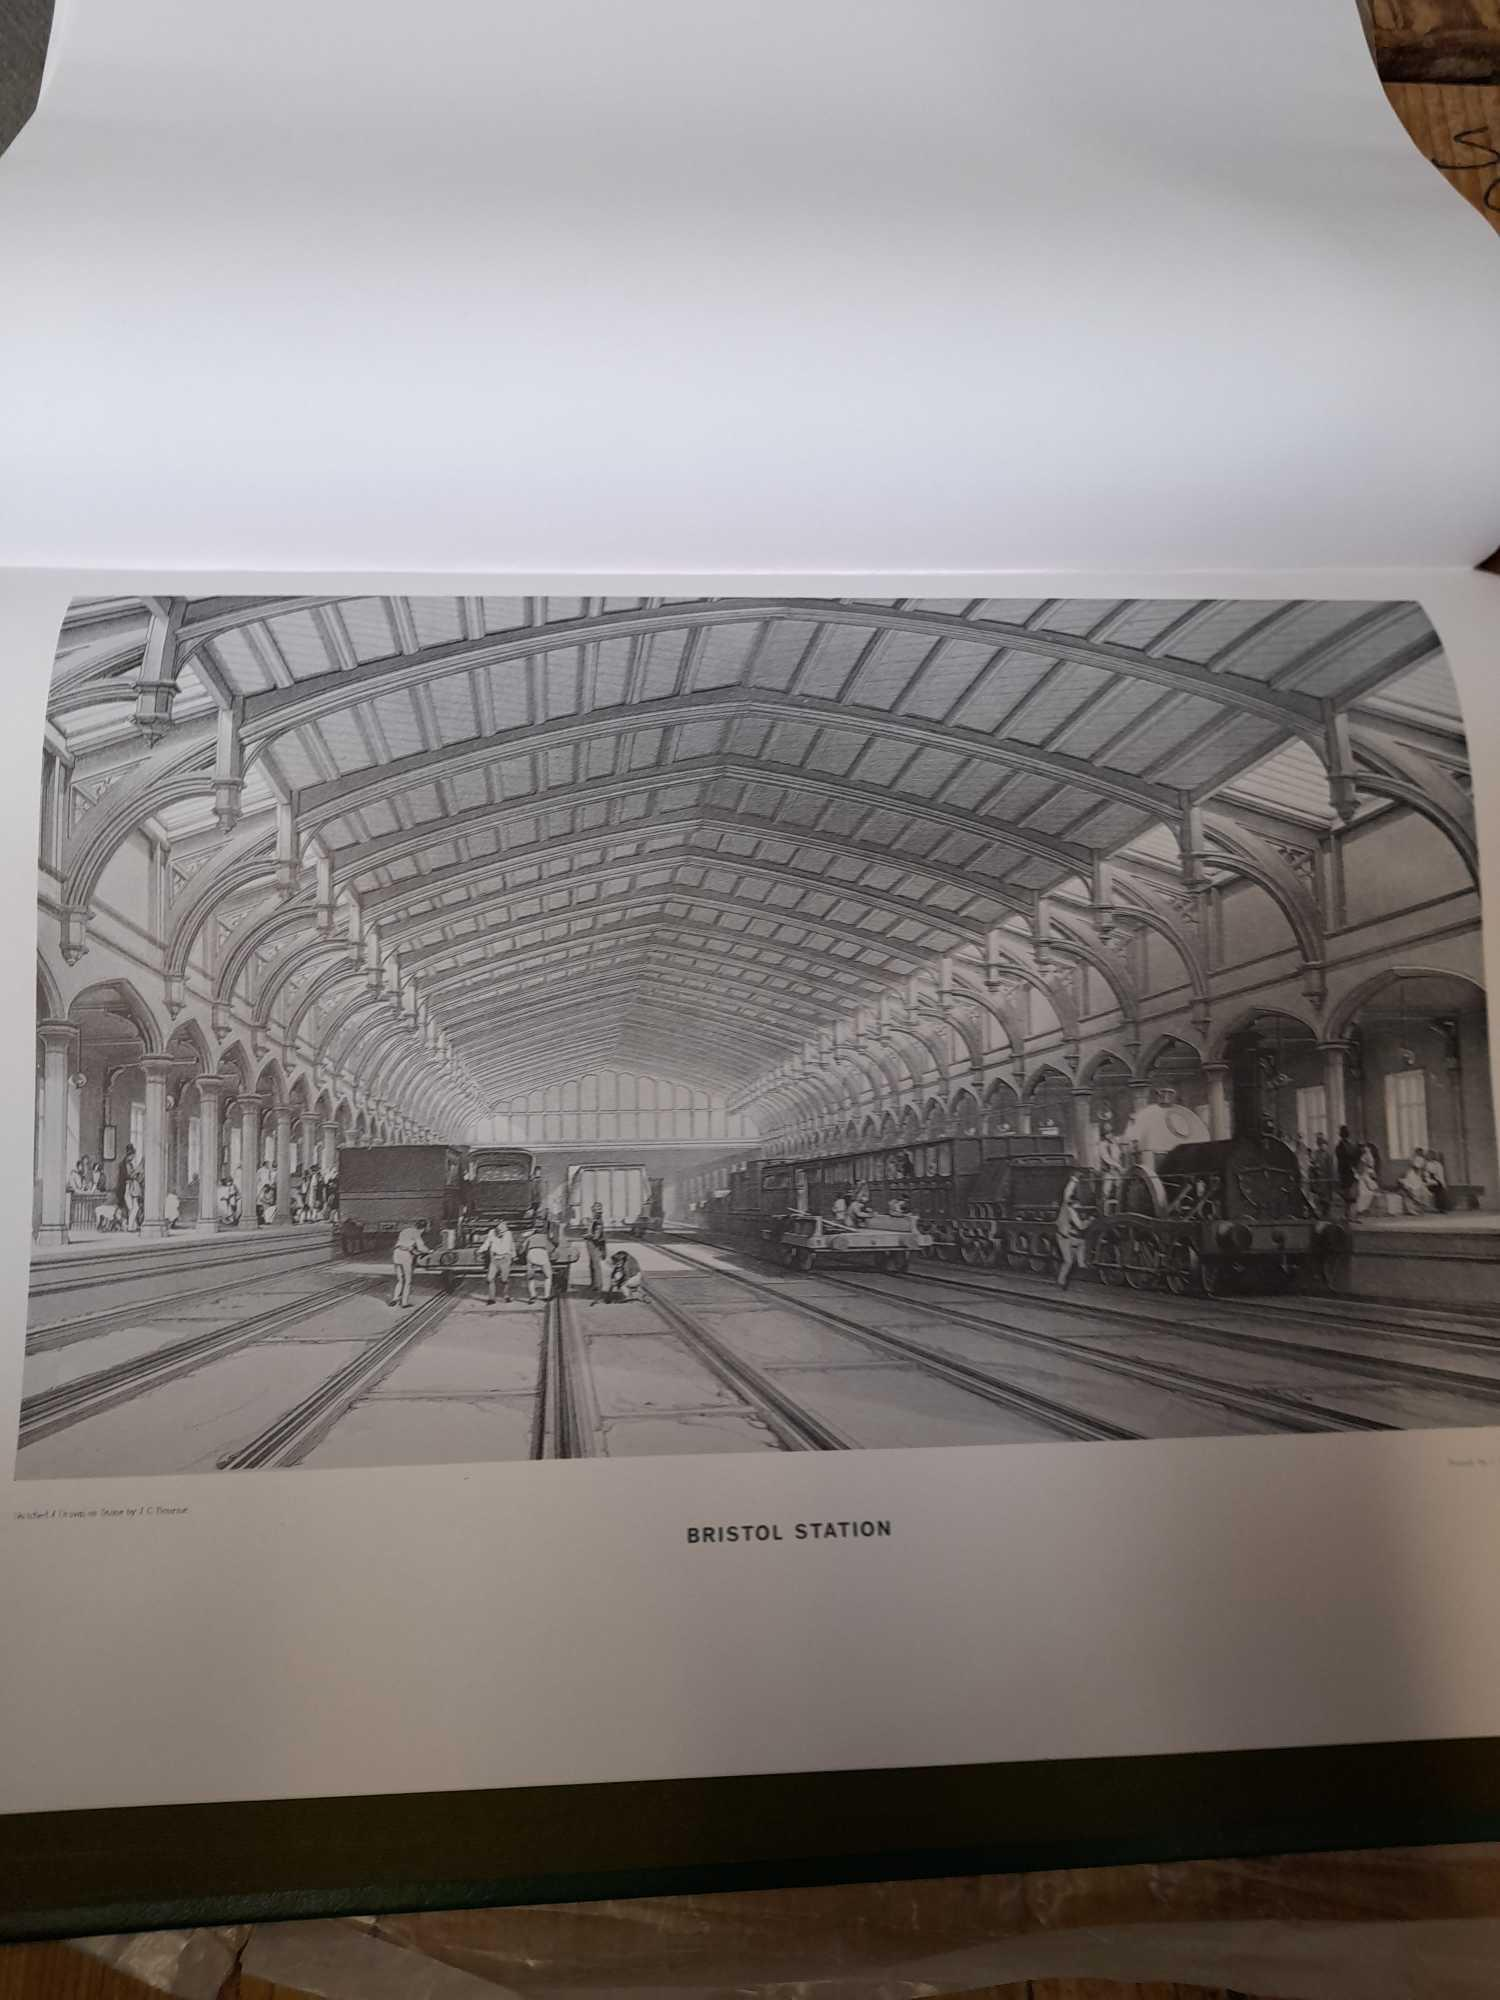 BOURNES GREAT WESTERN RAILWAY BOOK COPY 1 OF 500 - Image 9 of 9